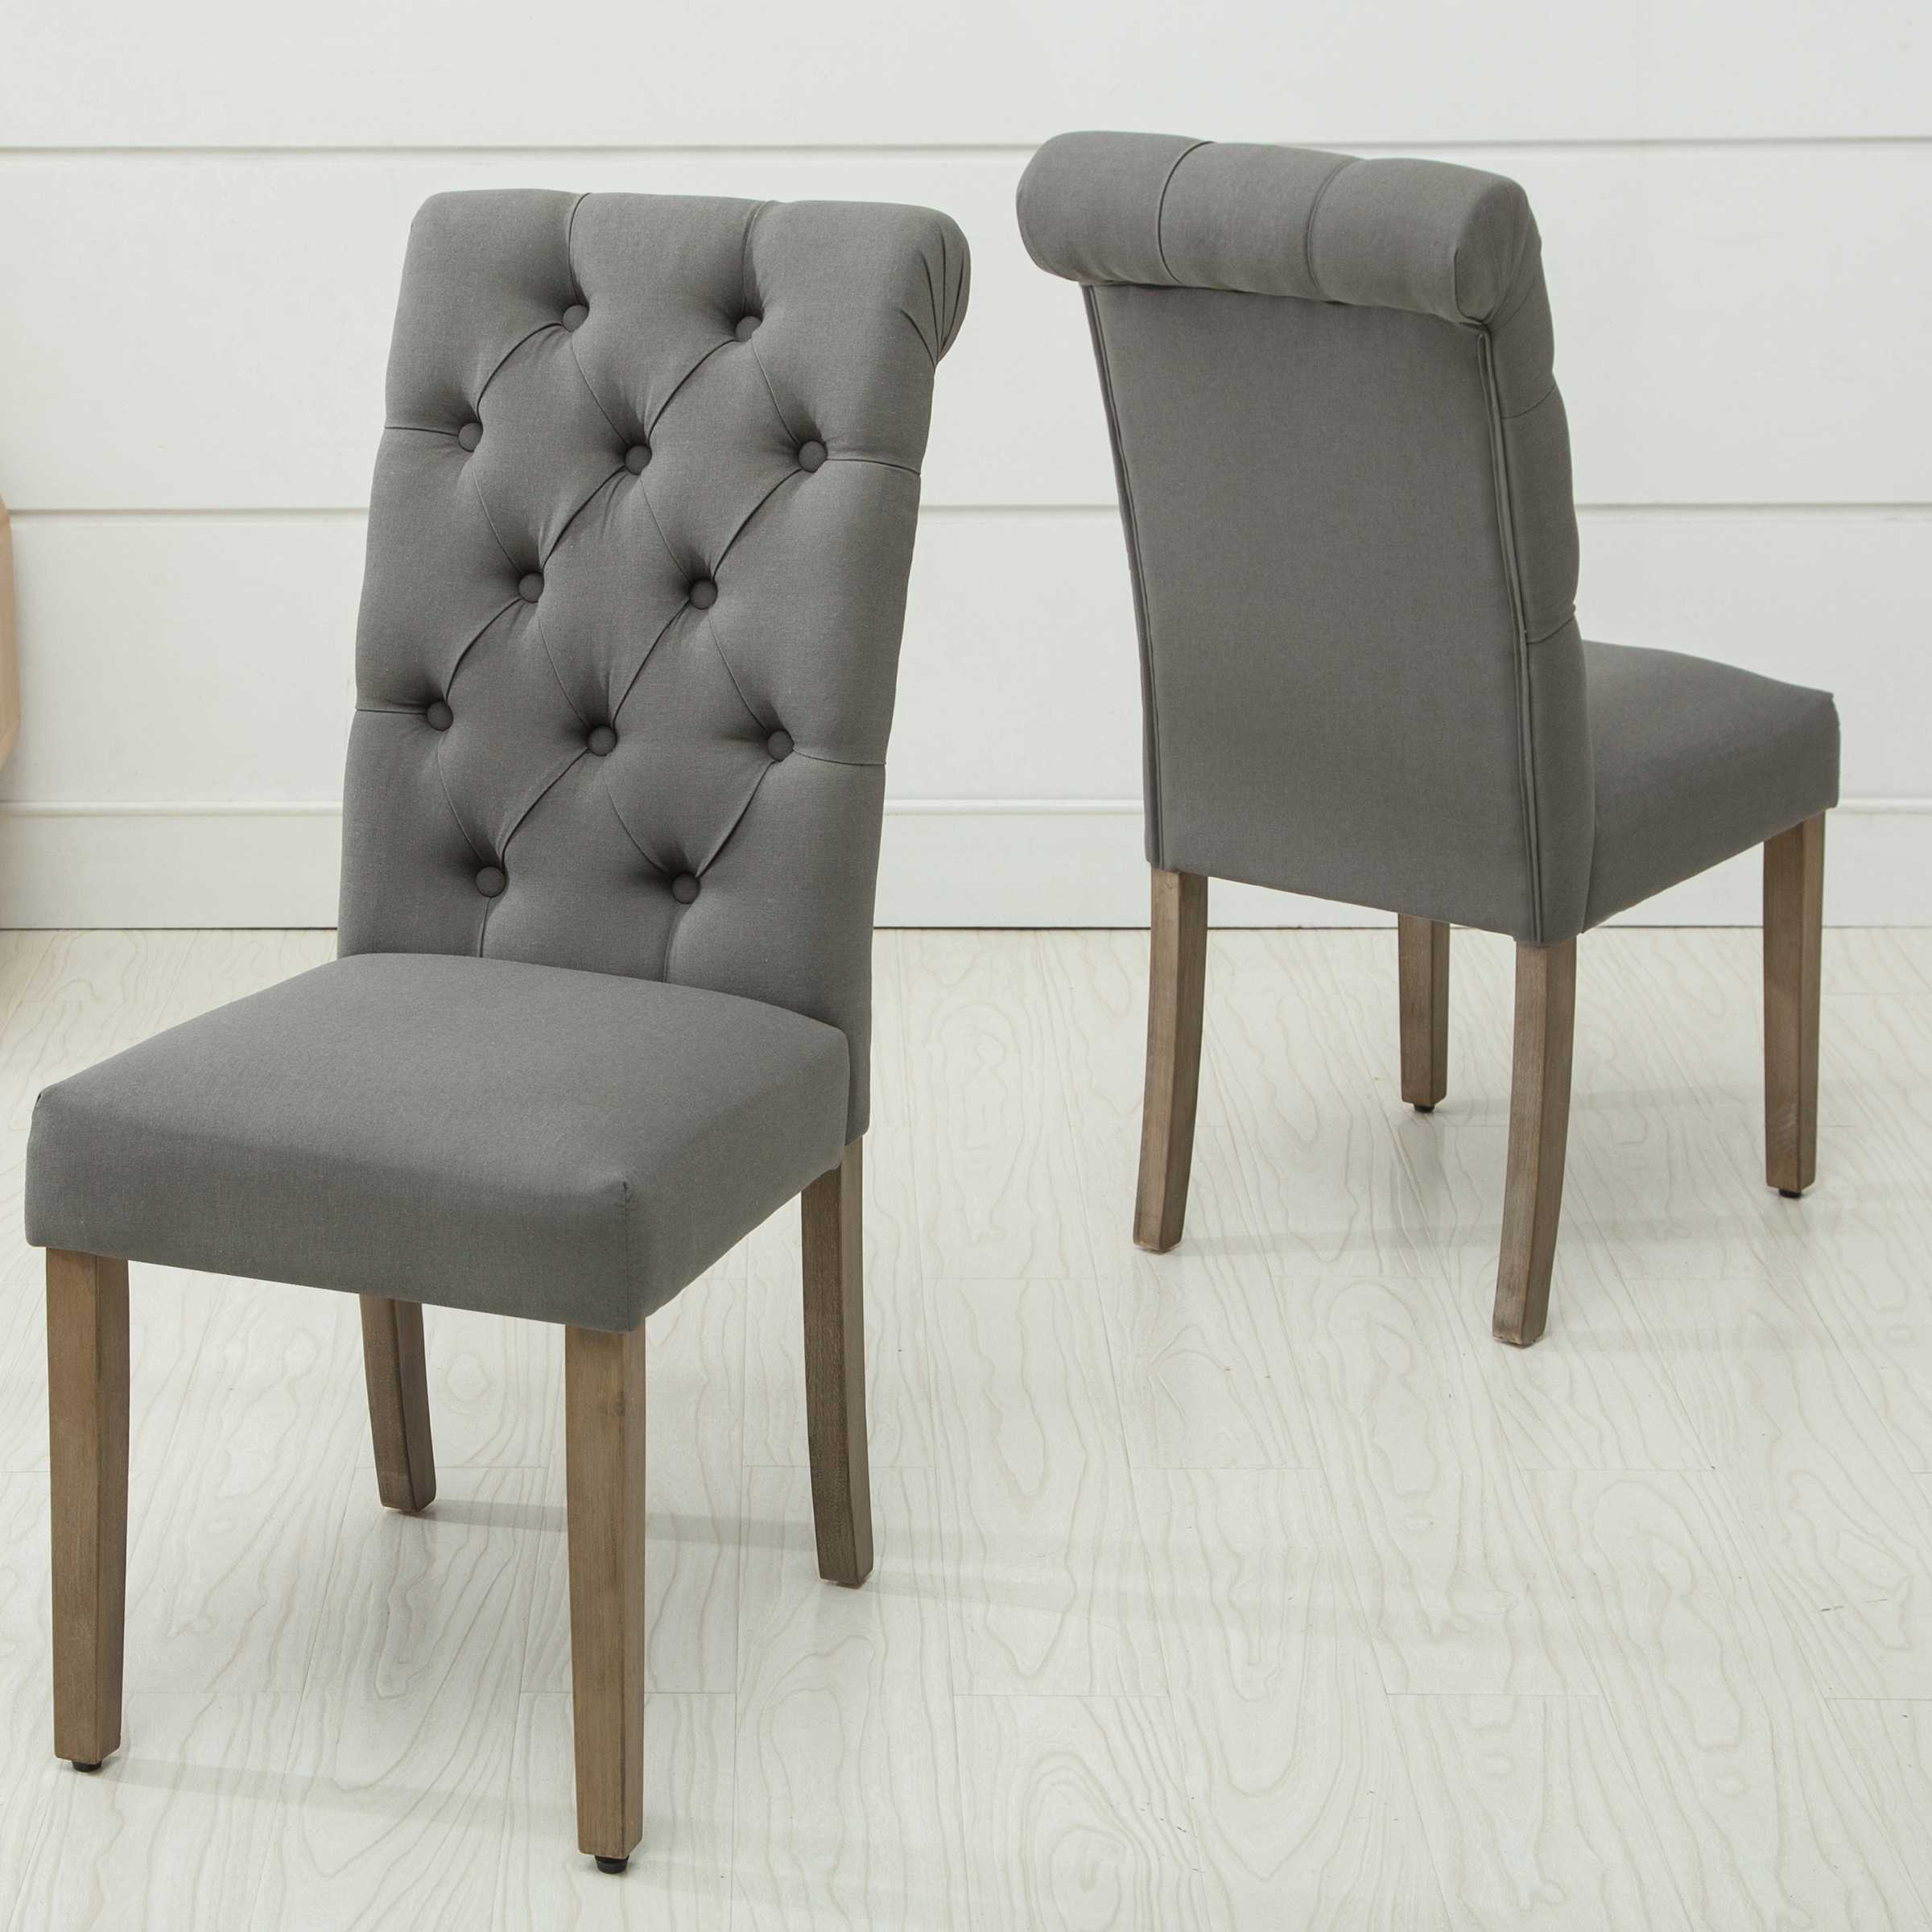 2 ac pacific d 006 grey dining chairs